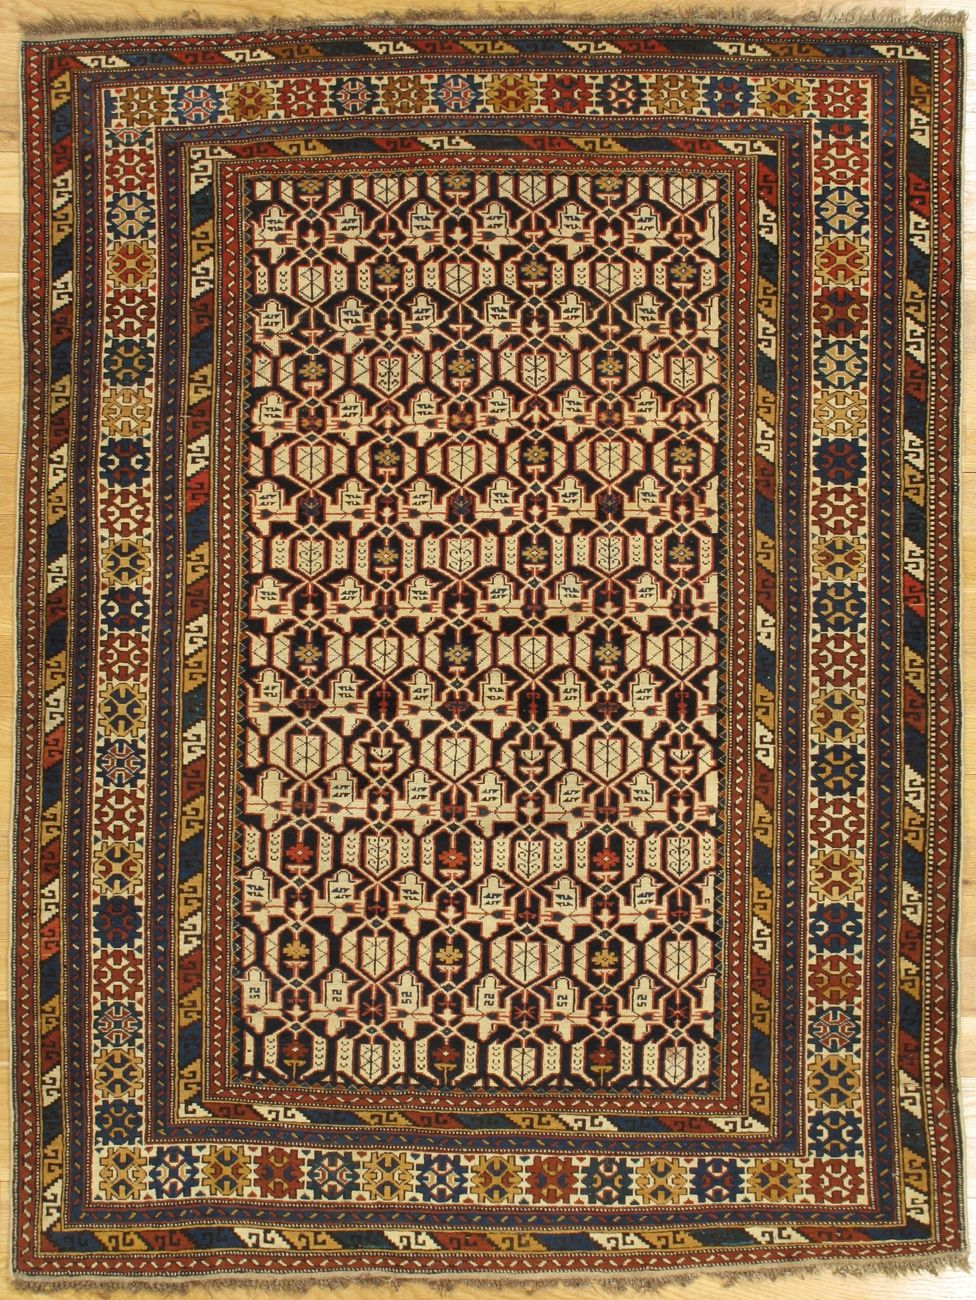 Konagkend Rug From Eastern Caucasus West Coast Of The Caspian Sea Age Circa 1890 Size 5 8 X4 4 173x102 Cm Rugs Antique Rugs Asian Rugs